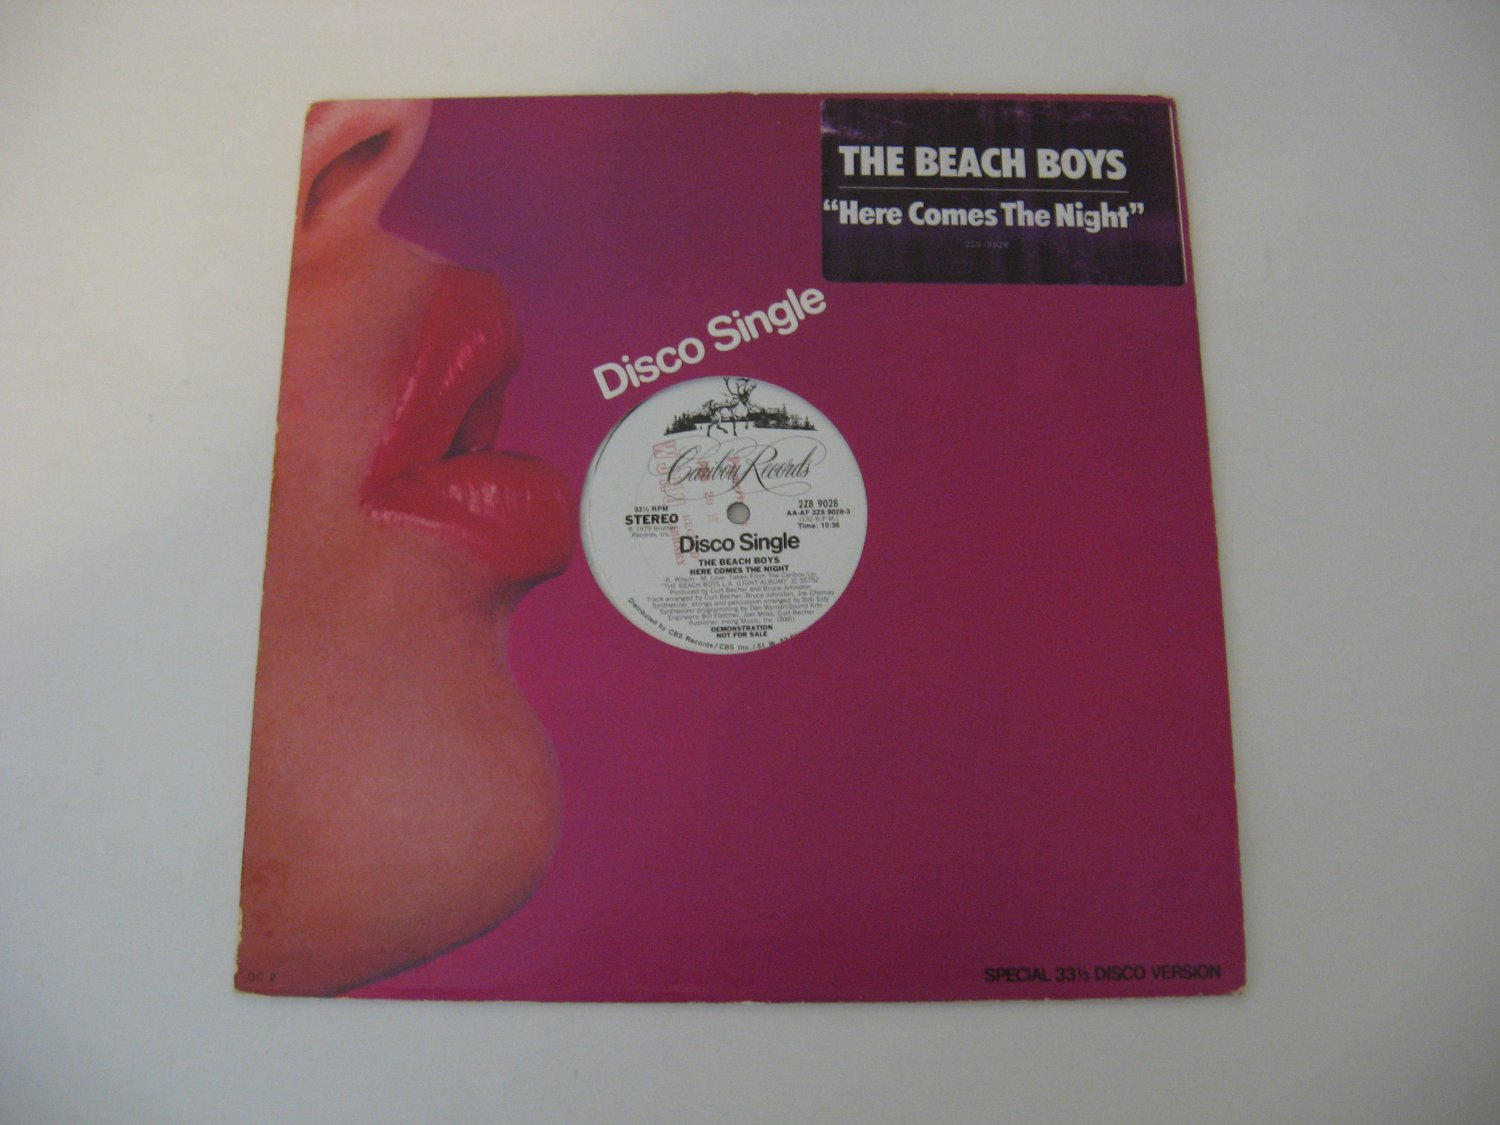 The Beach Boys - Here Comes The Night - 1979   (Record)